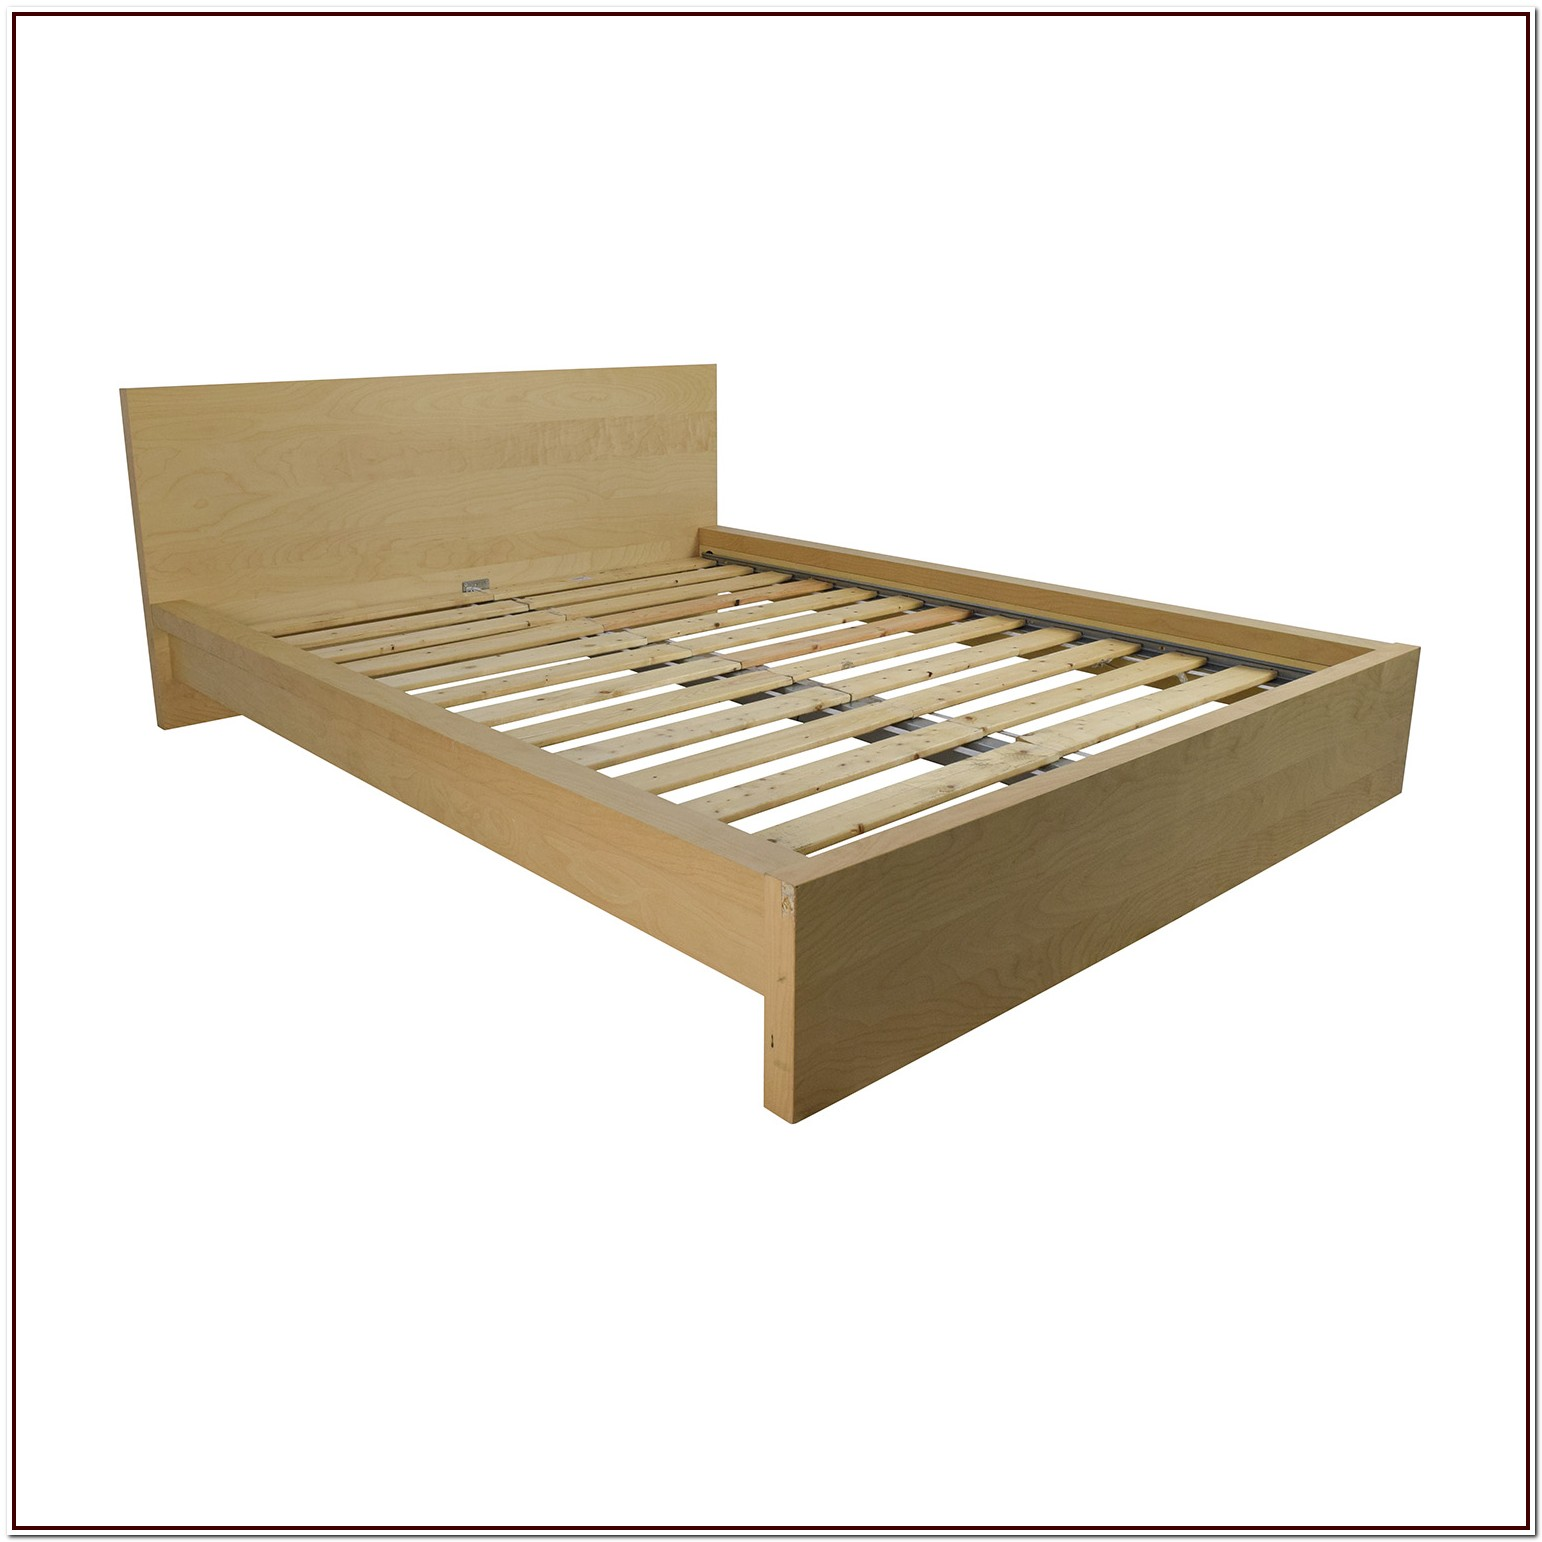 Queen Size Bed Frame Dimensions Ikea